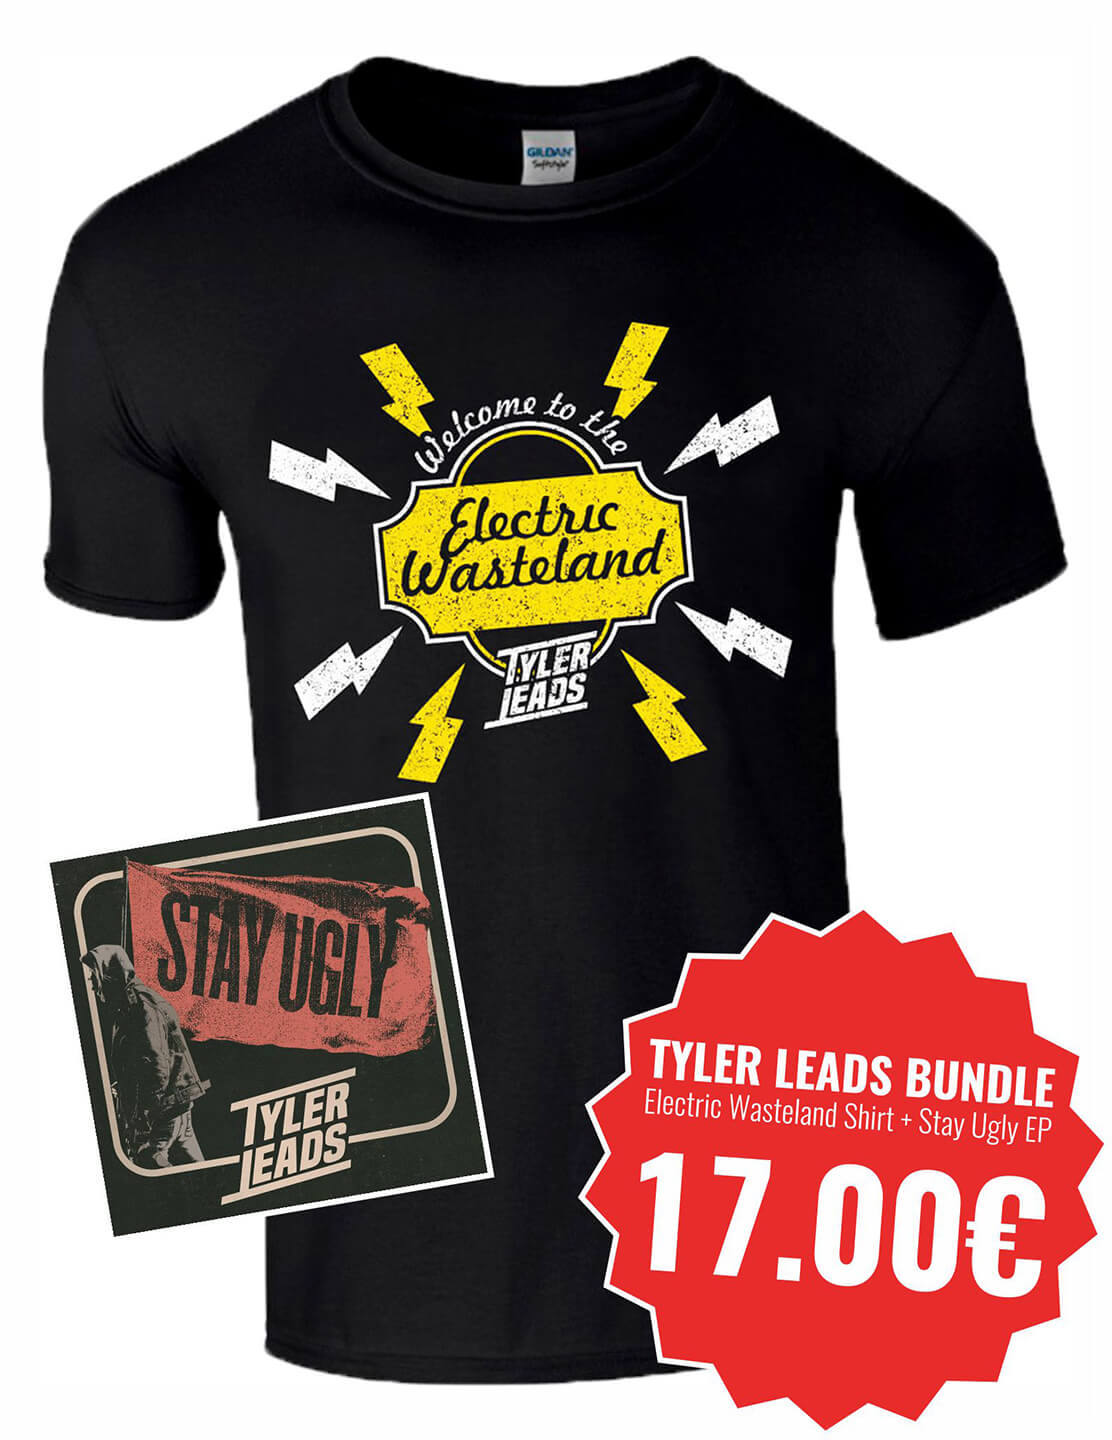 [BUNDLE] Stay Ugly EP + Electric Wasteland T-Shirt